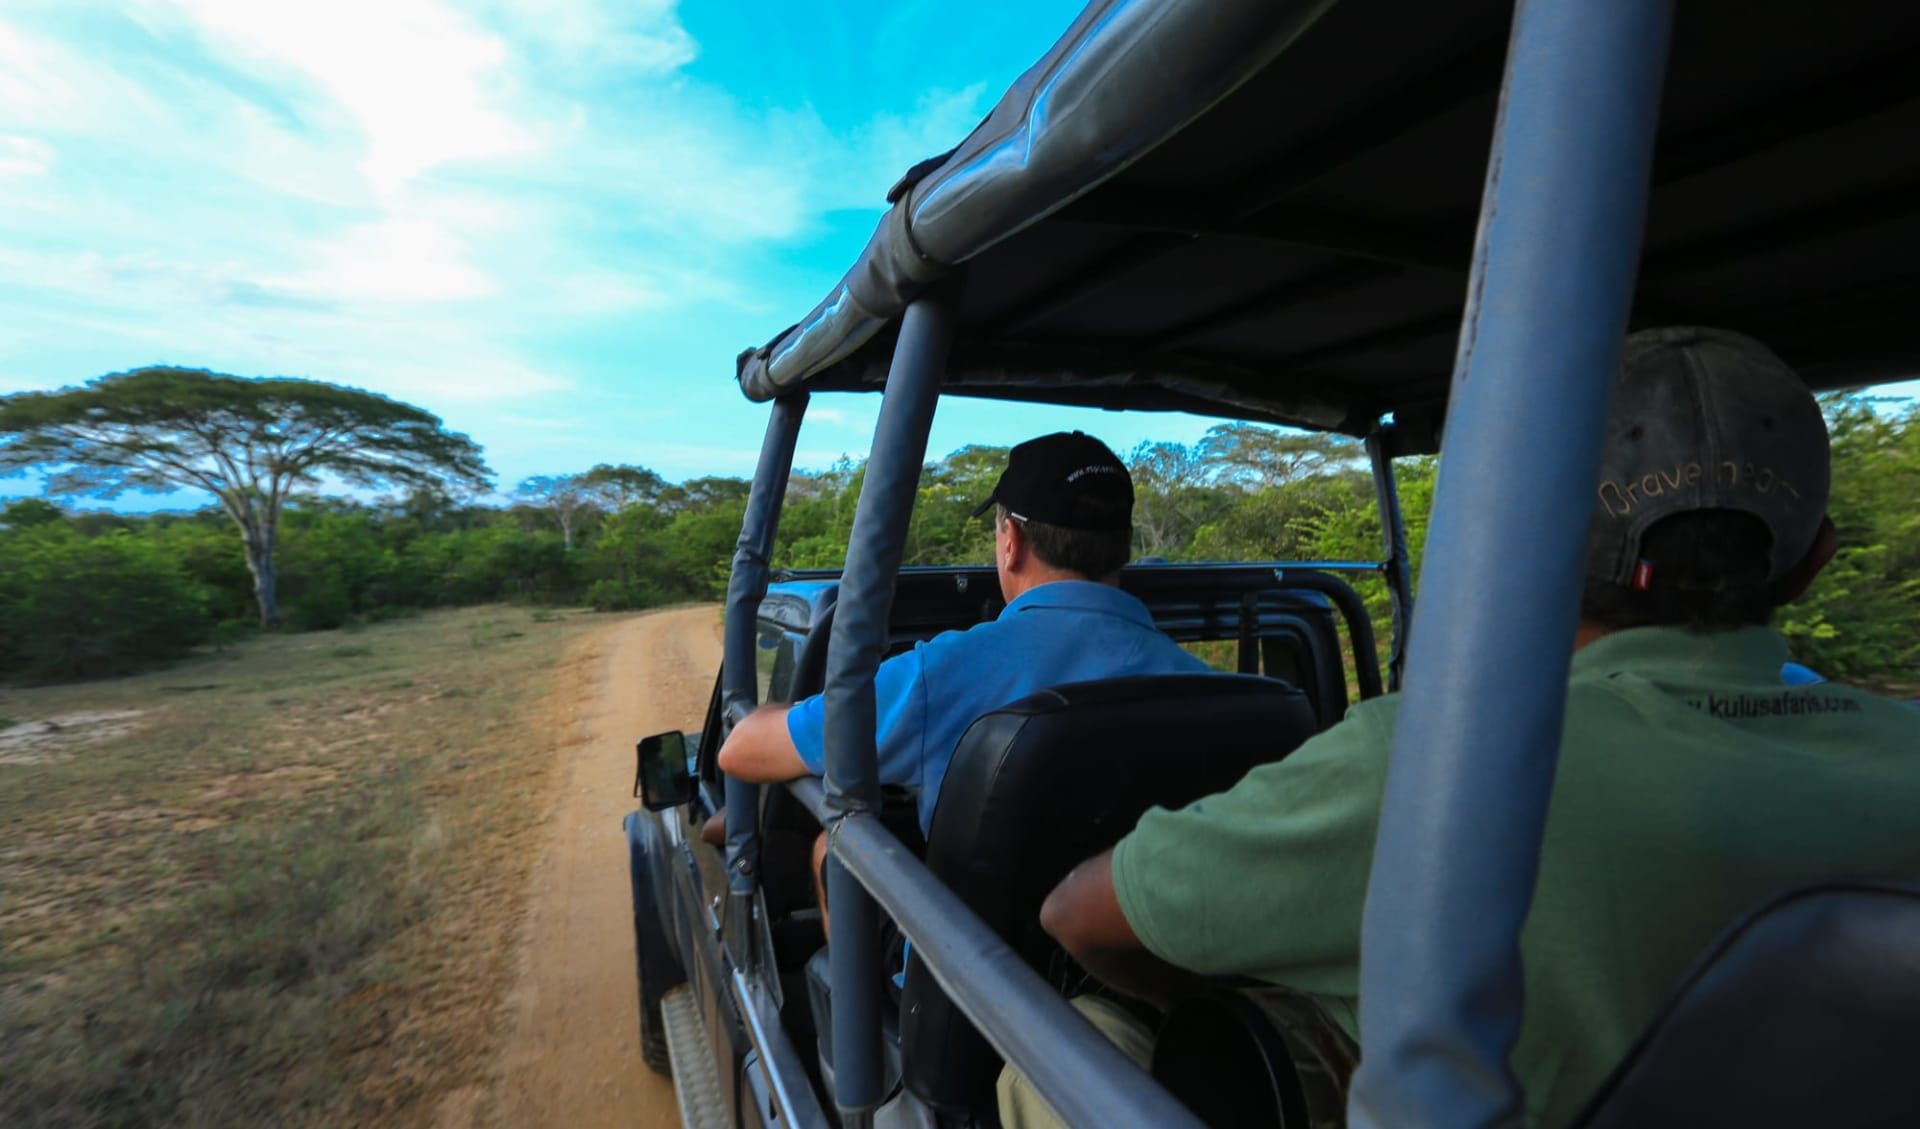 Yala Nationalpark Safari - Kulu Safaris - 2 Tage ab Colombo: Kulu Safaris Yala